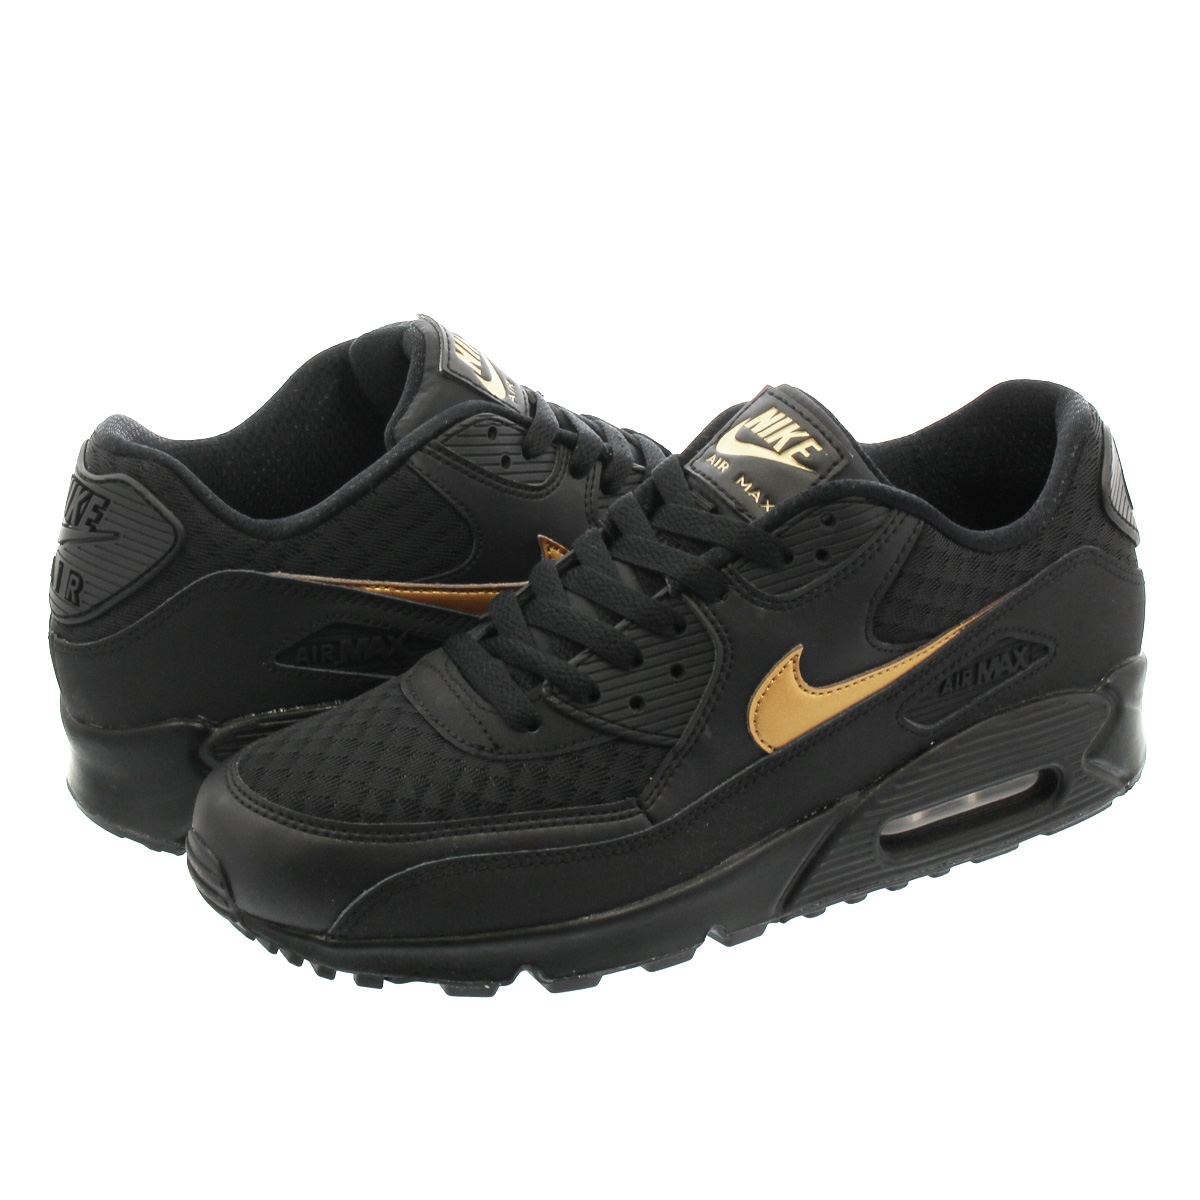 c30dc36992fc NIKE AIR MAX 90 ESSENTIAL Kie Ney AMAX 90 essential BLACK METALLIC GOLD  av7894-001